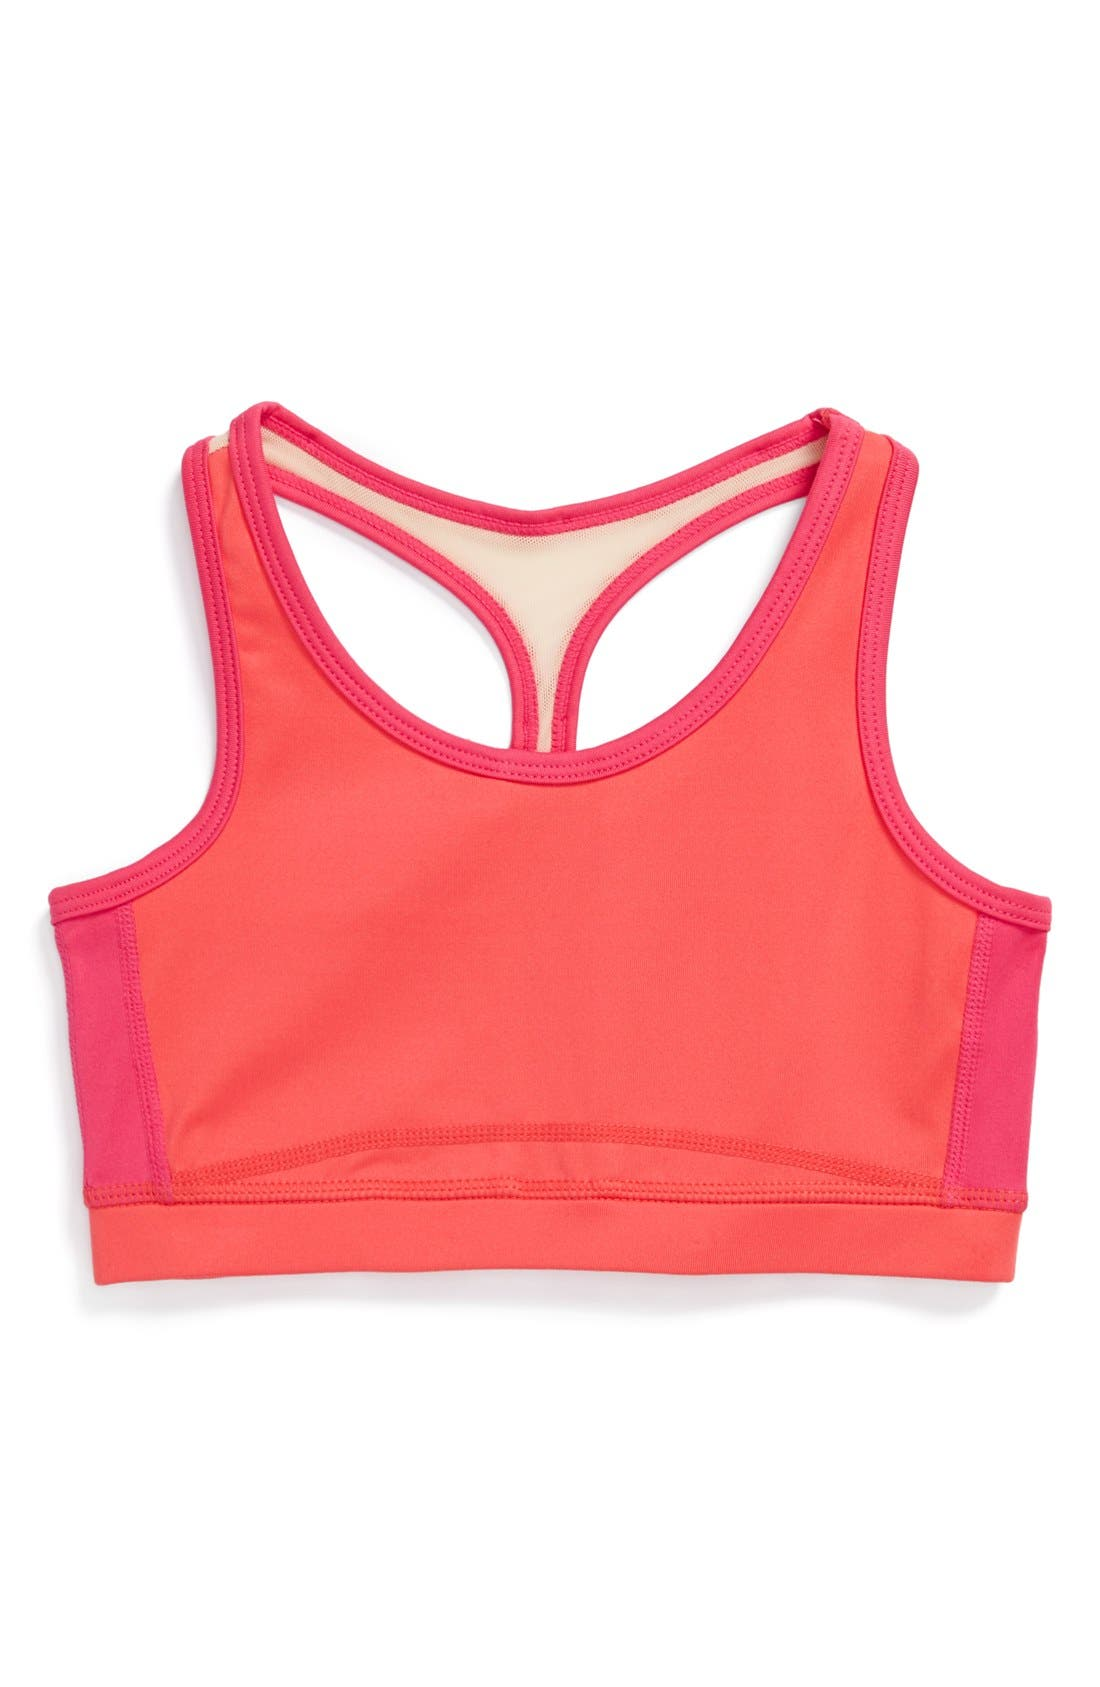 Main Image - Limeapple Racerback Sports Top (Little Girls & Big Girls)